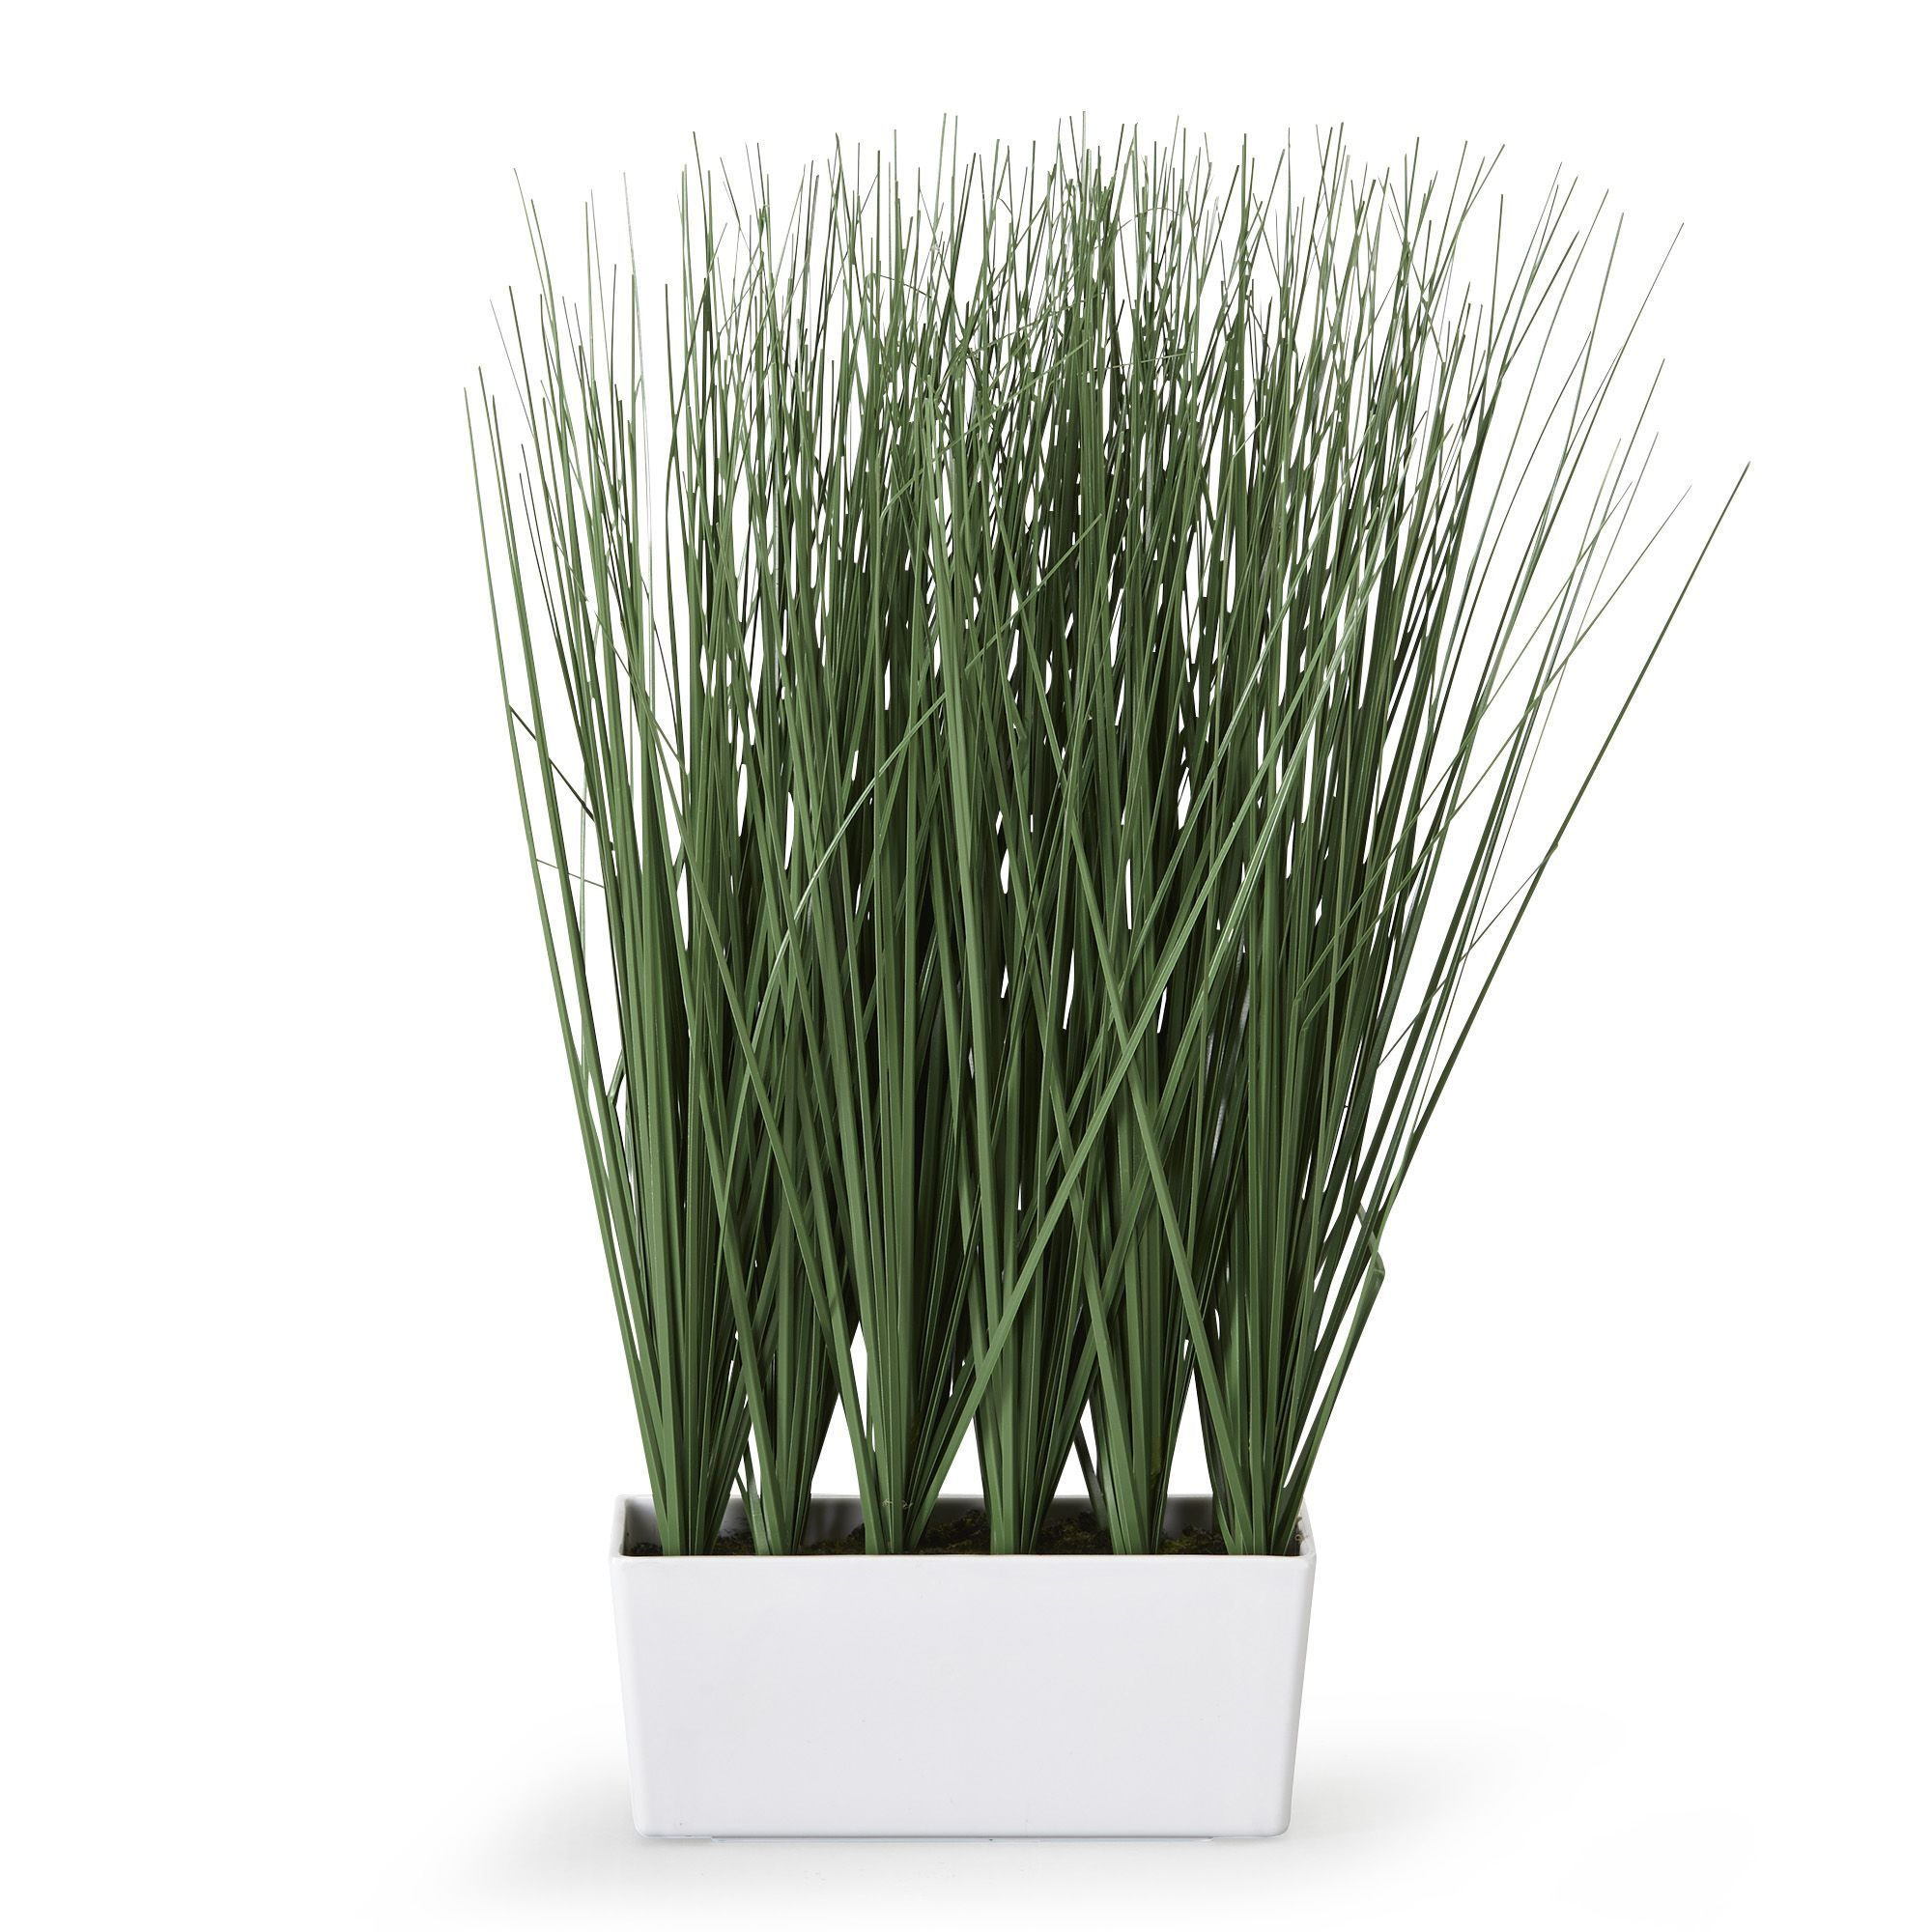 Jardini re d 39 herbes hautes artificielles h40cm vert for Plante decorative jardin